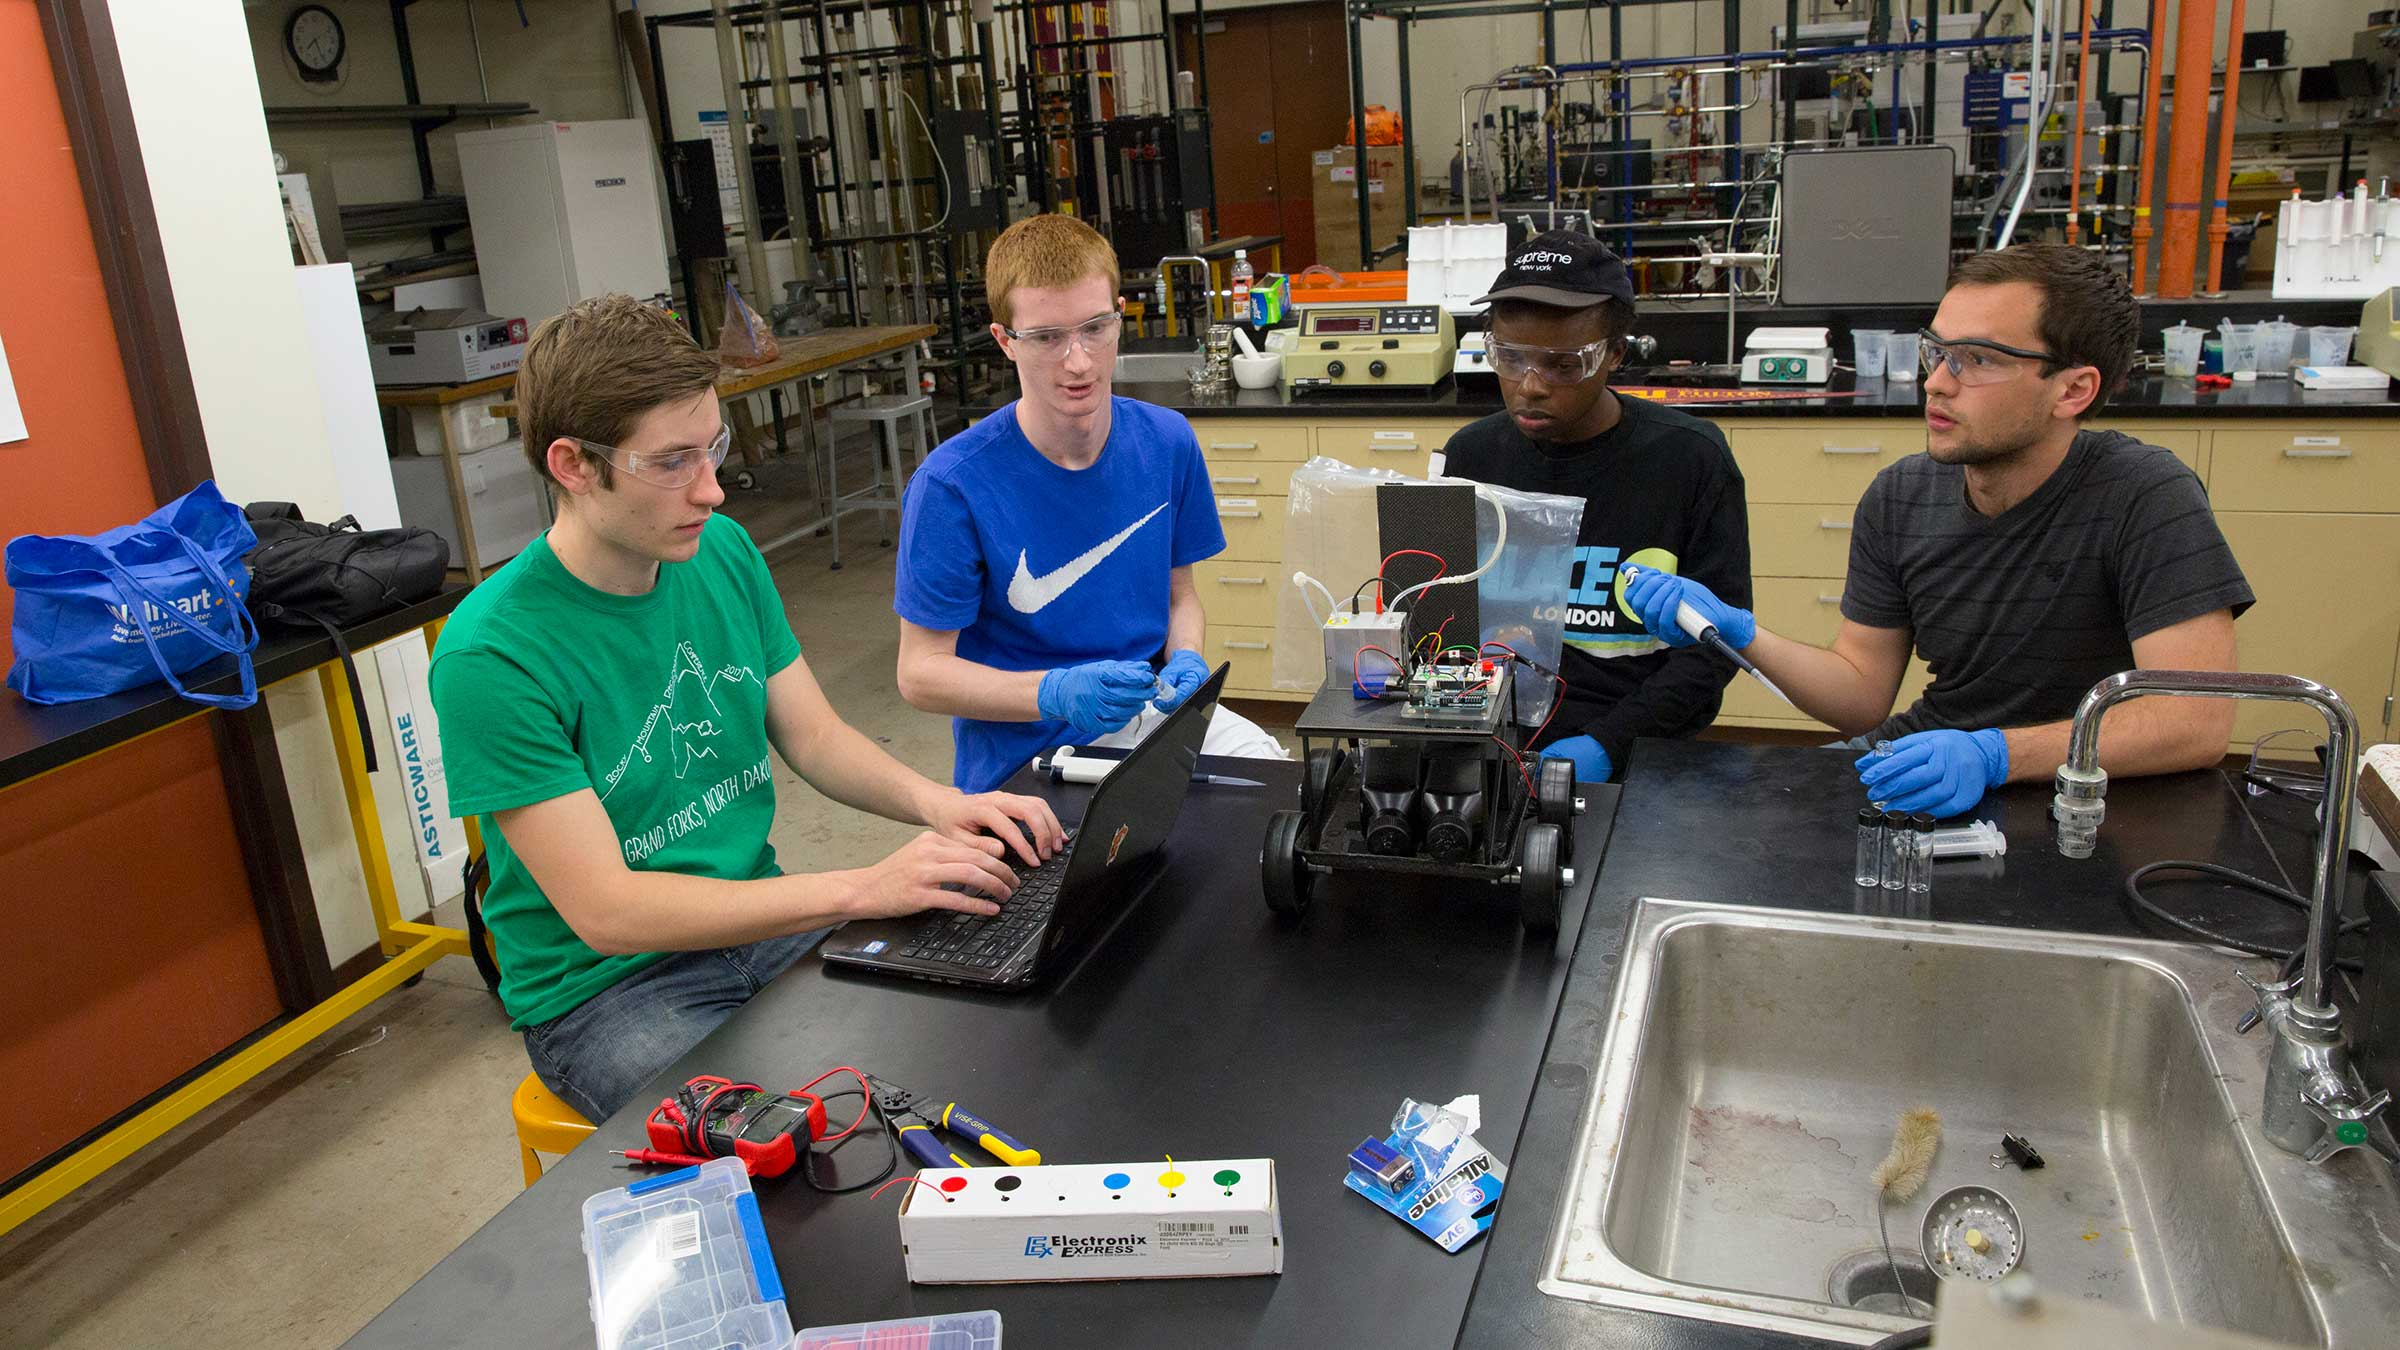 Four male engineering students students work at a lab table on a project